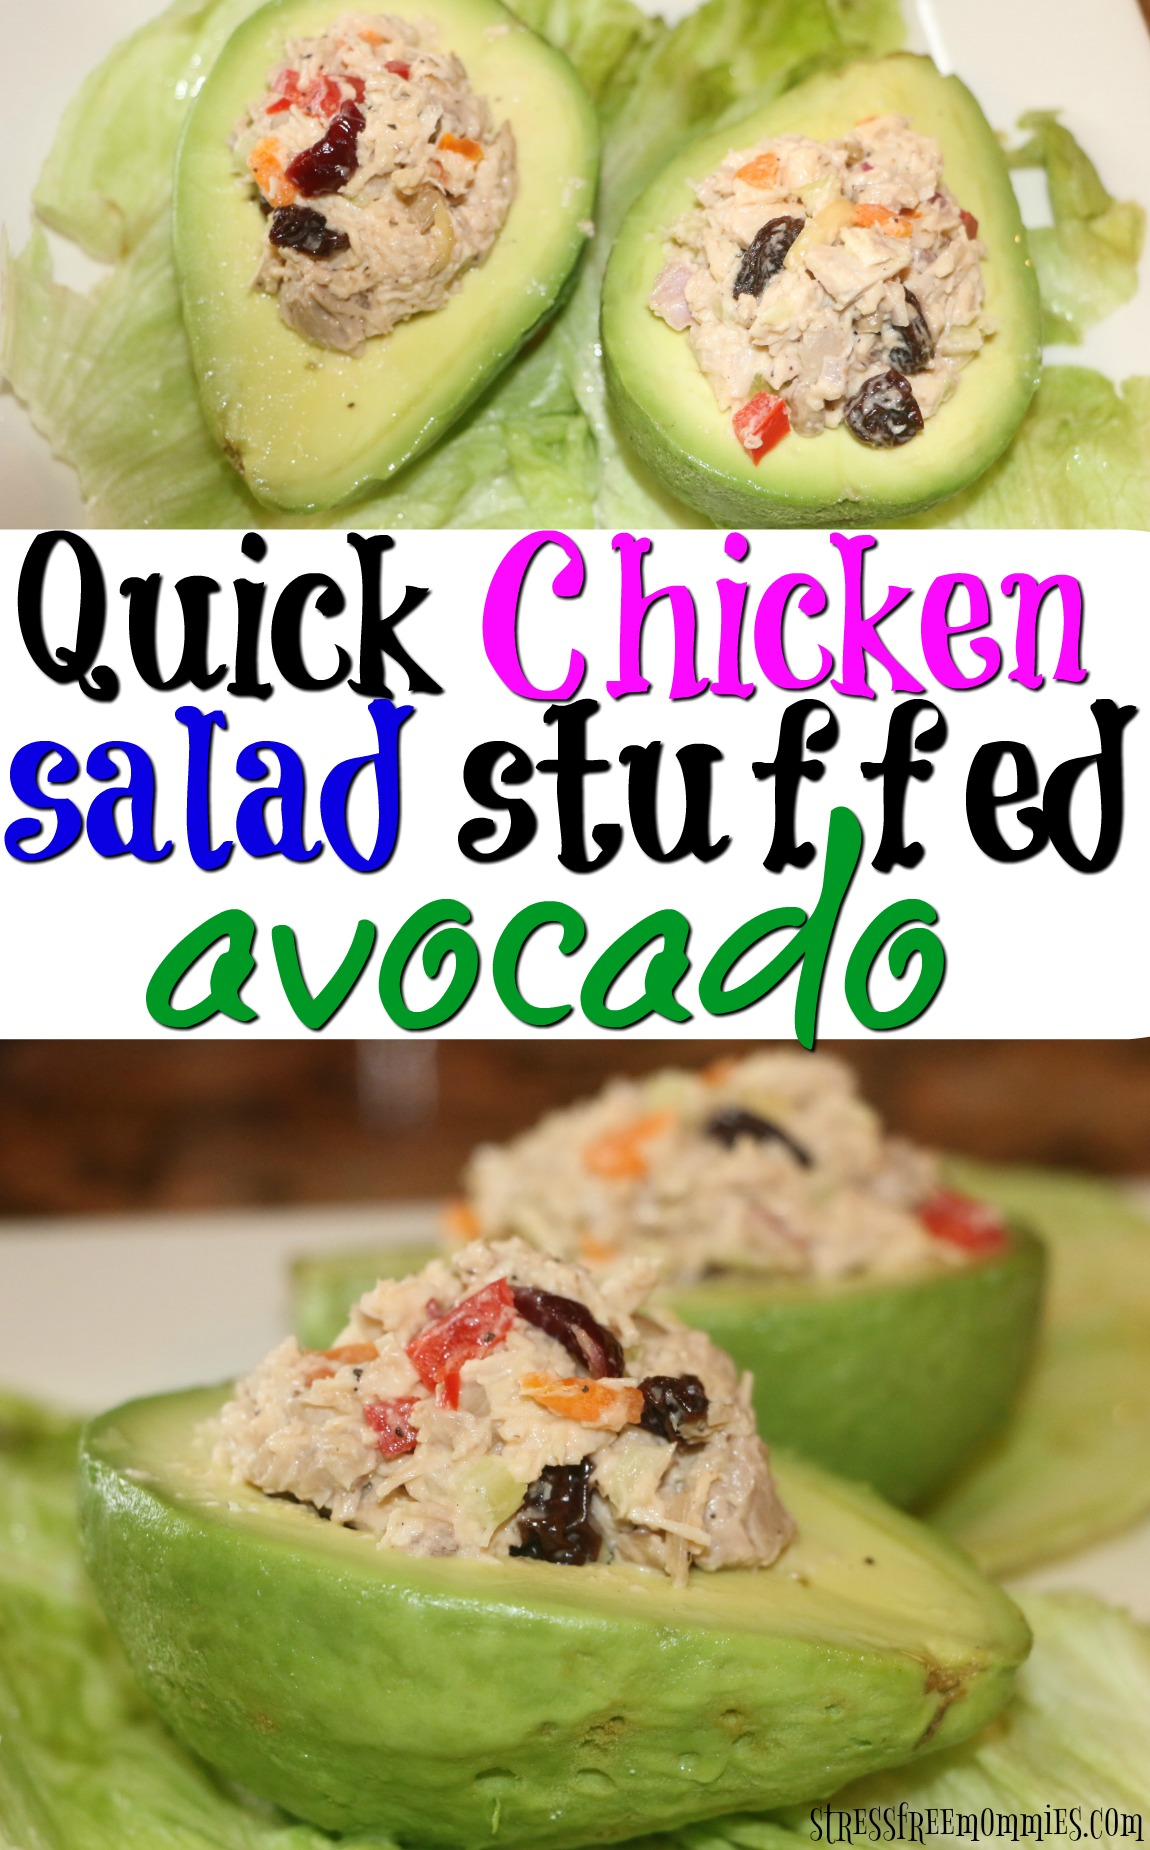 Quick and easy chicken salad stuffed avocado